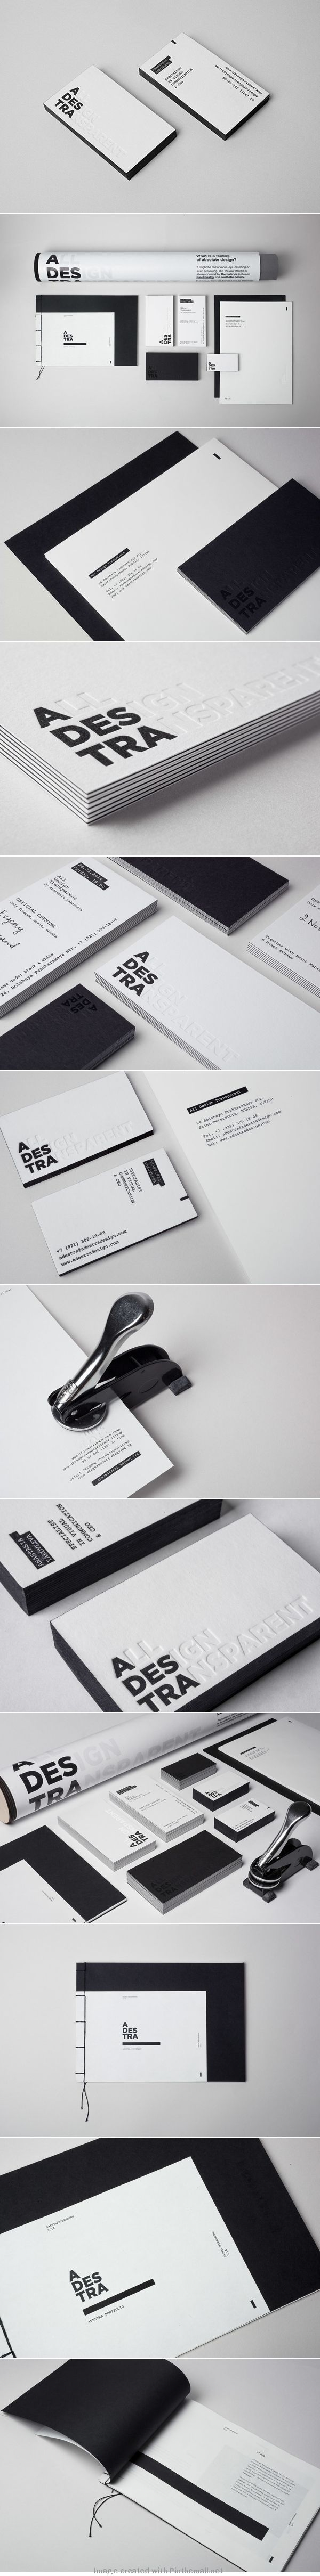 All Design Transparent. B&W #brand #Identity - Creativeideas.today